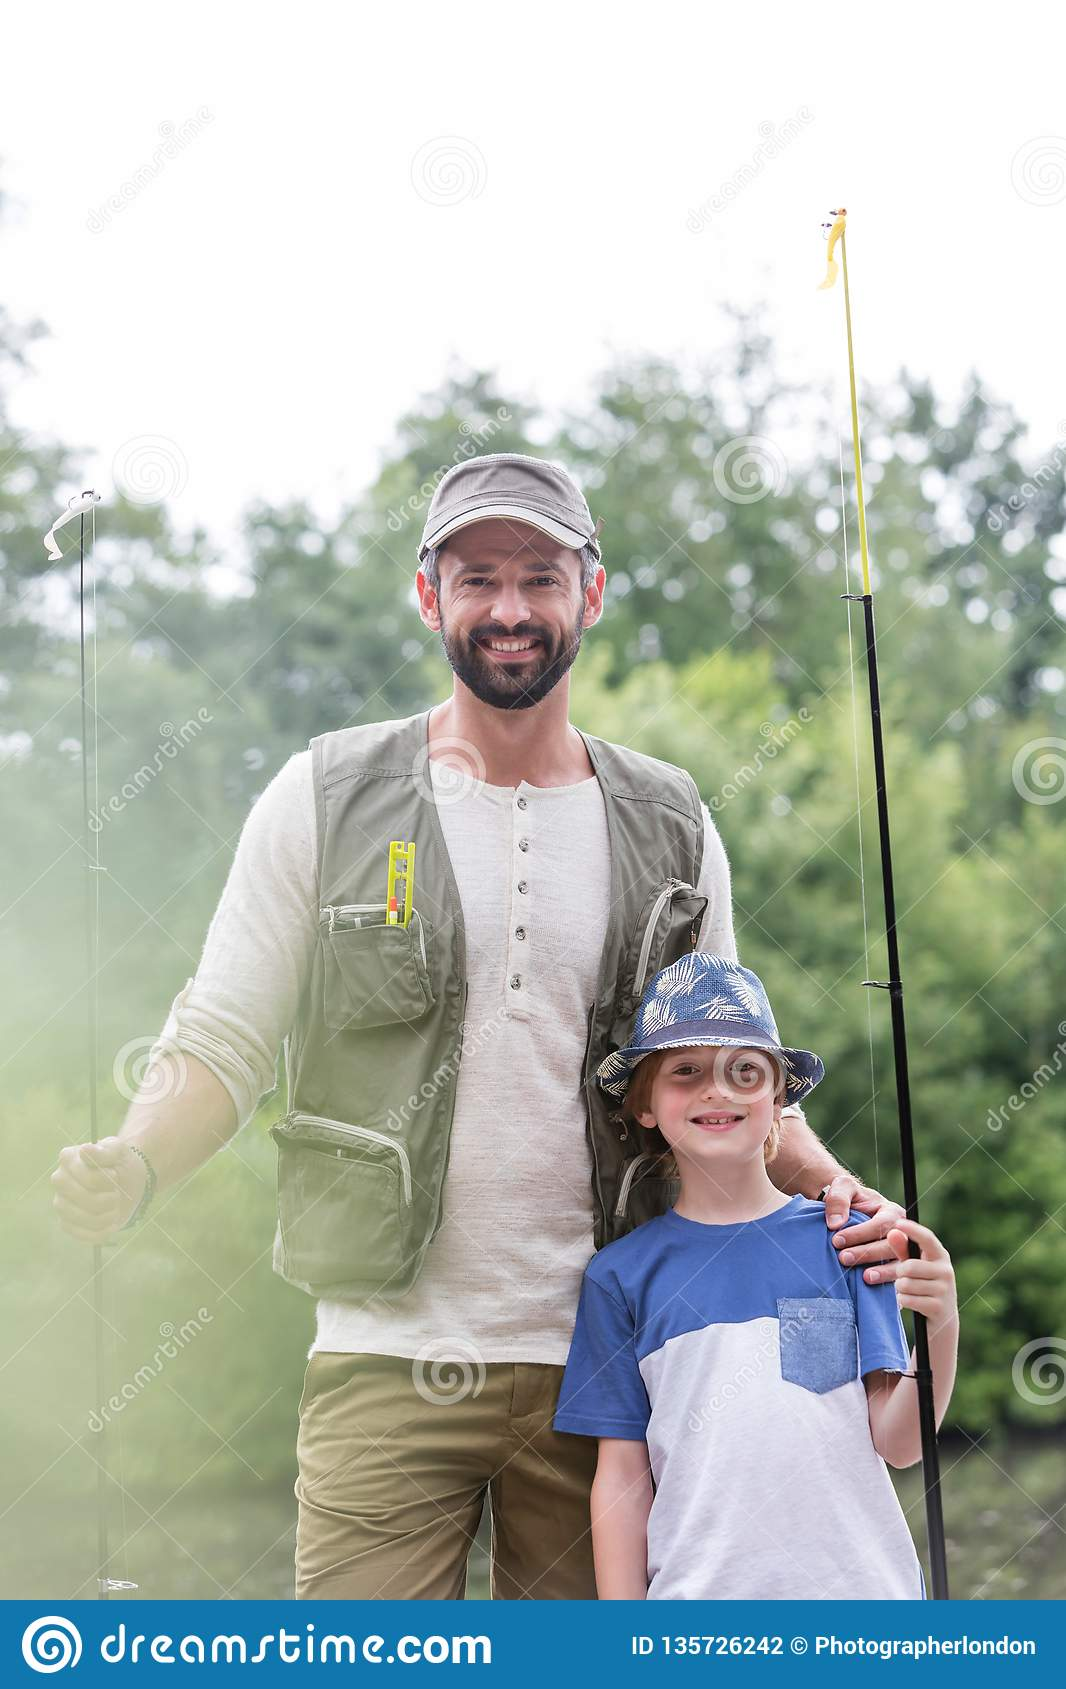 Portrait of smiling father and son standing with fishing rods against trees